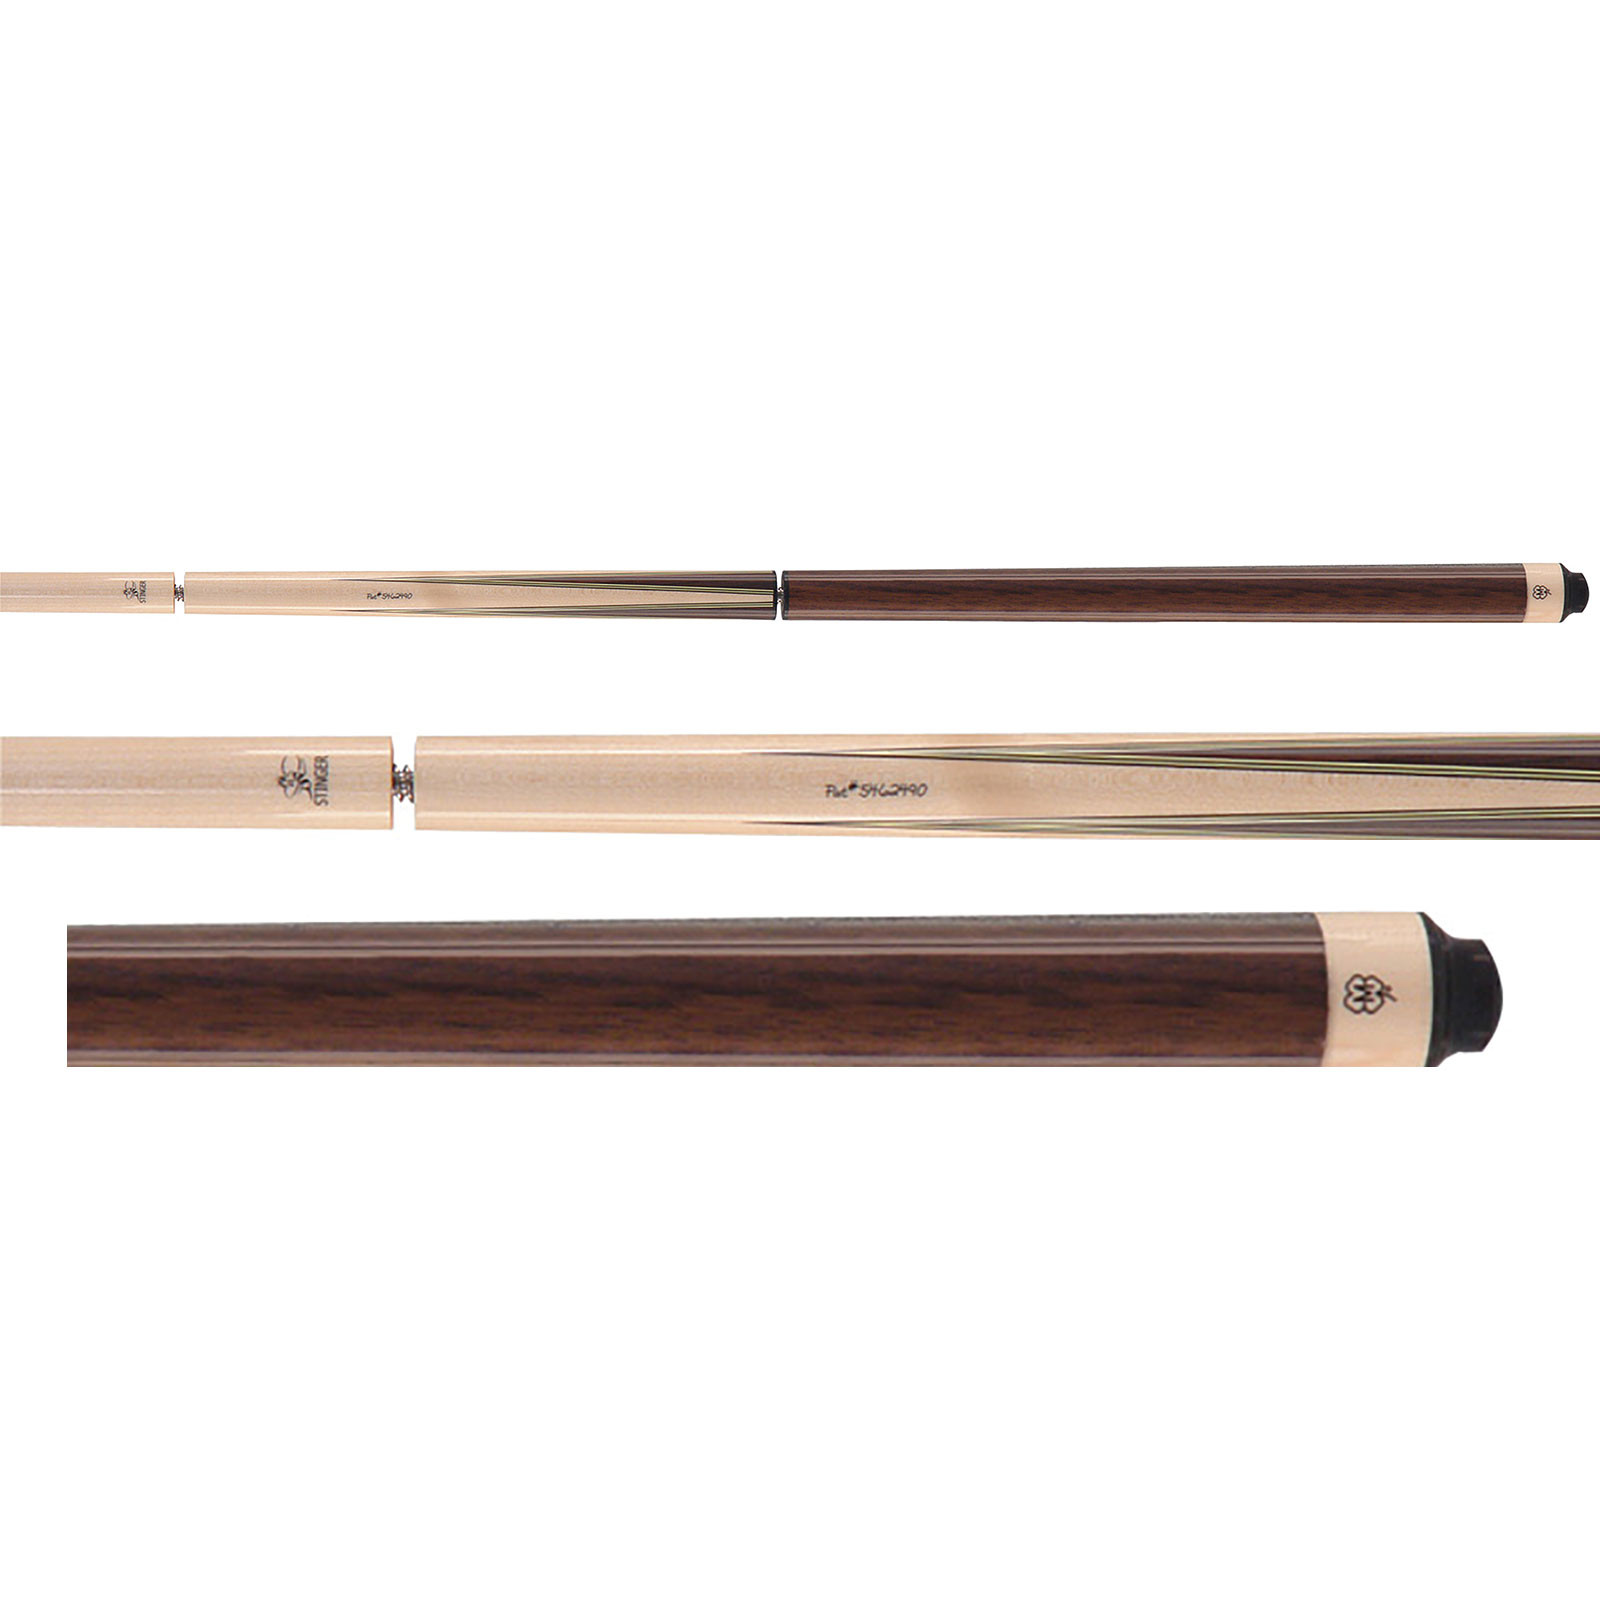 McDermott Stinger NG01 Break/Jump Pool Cue